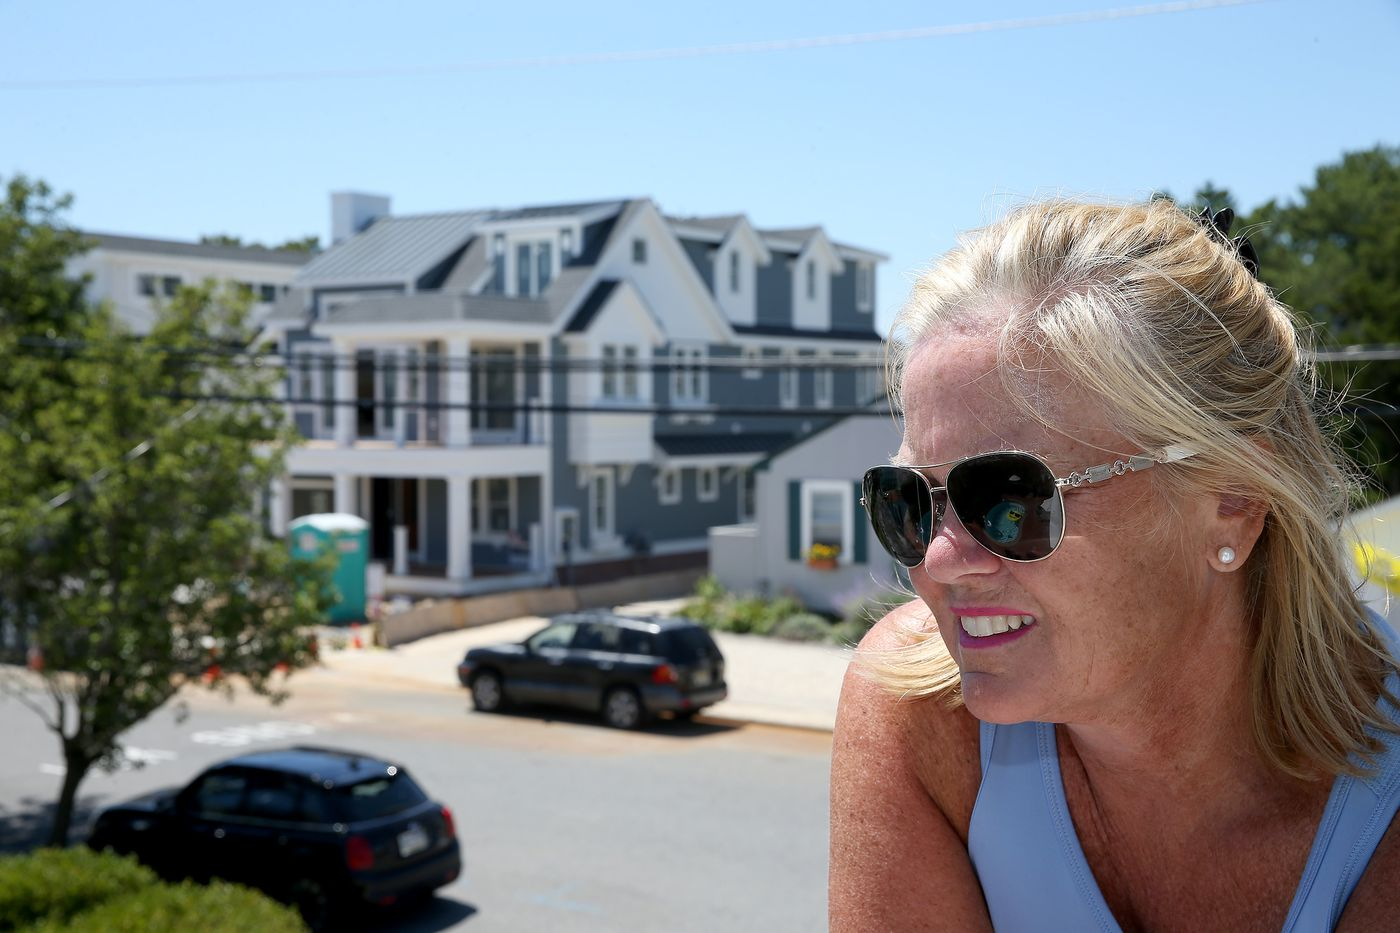 'I can't even take an outdoor shower.' In Avalon, 'sacred summer' is threatened by the contractors next door